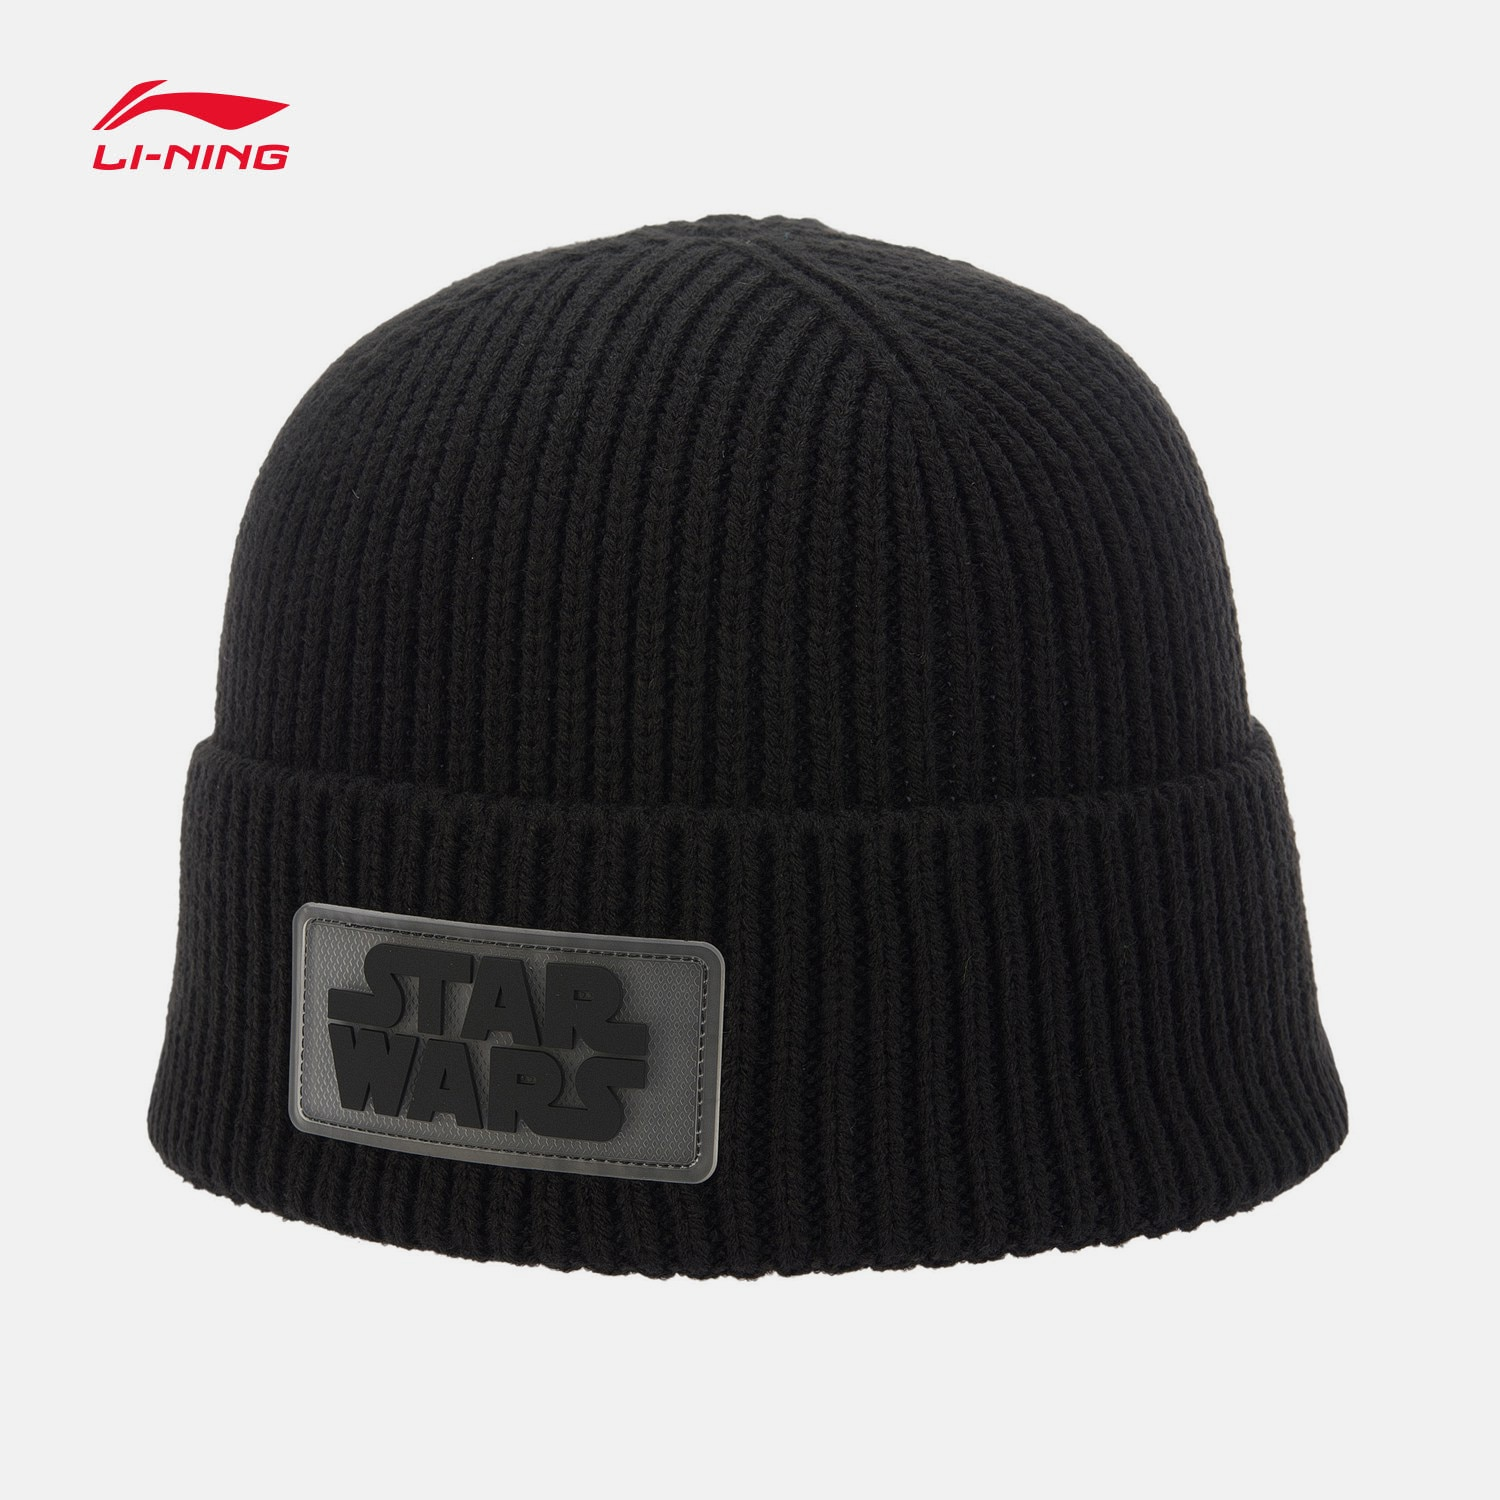 Series Knitted Hat Men's and Women's Same New Sports Cap Amzr044 hats for women fashion  fall hats for women